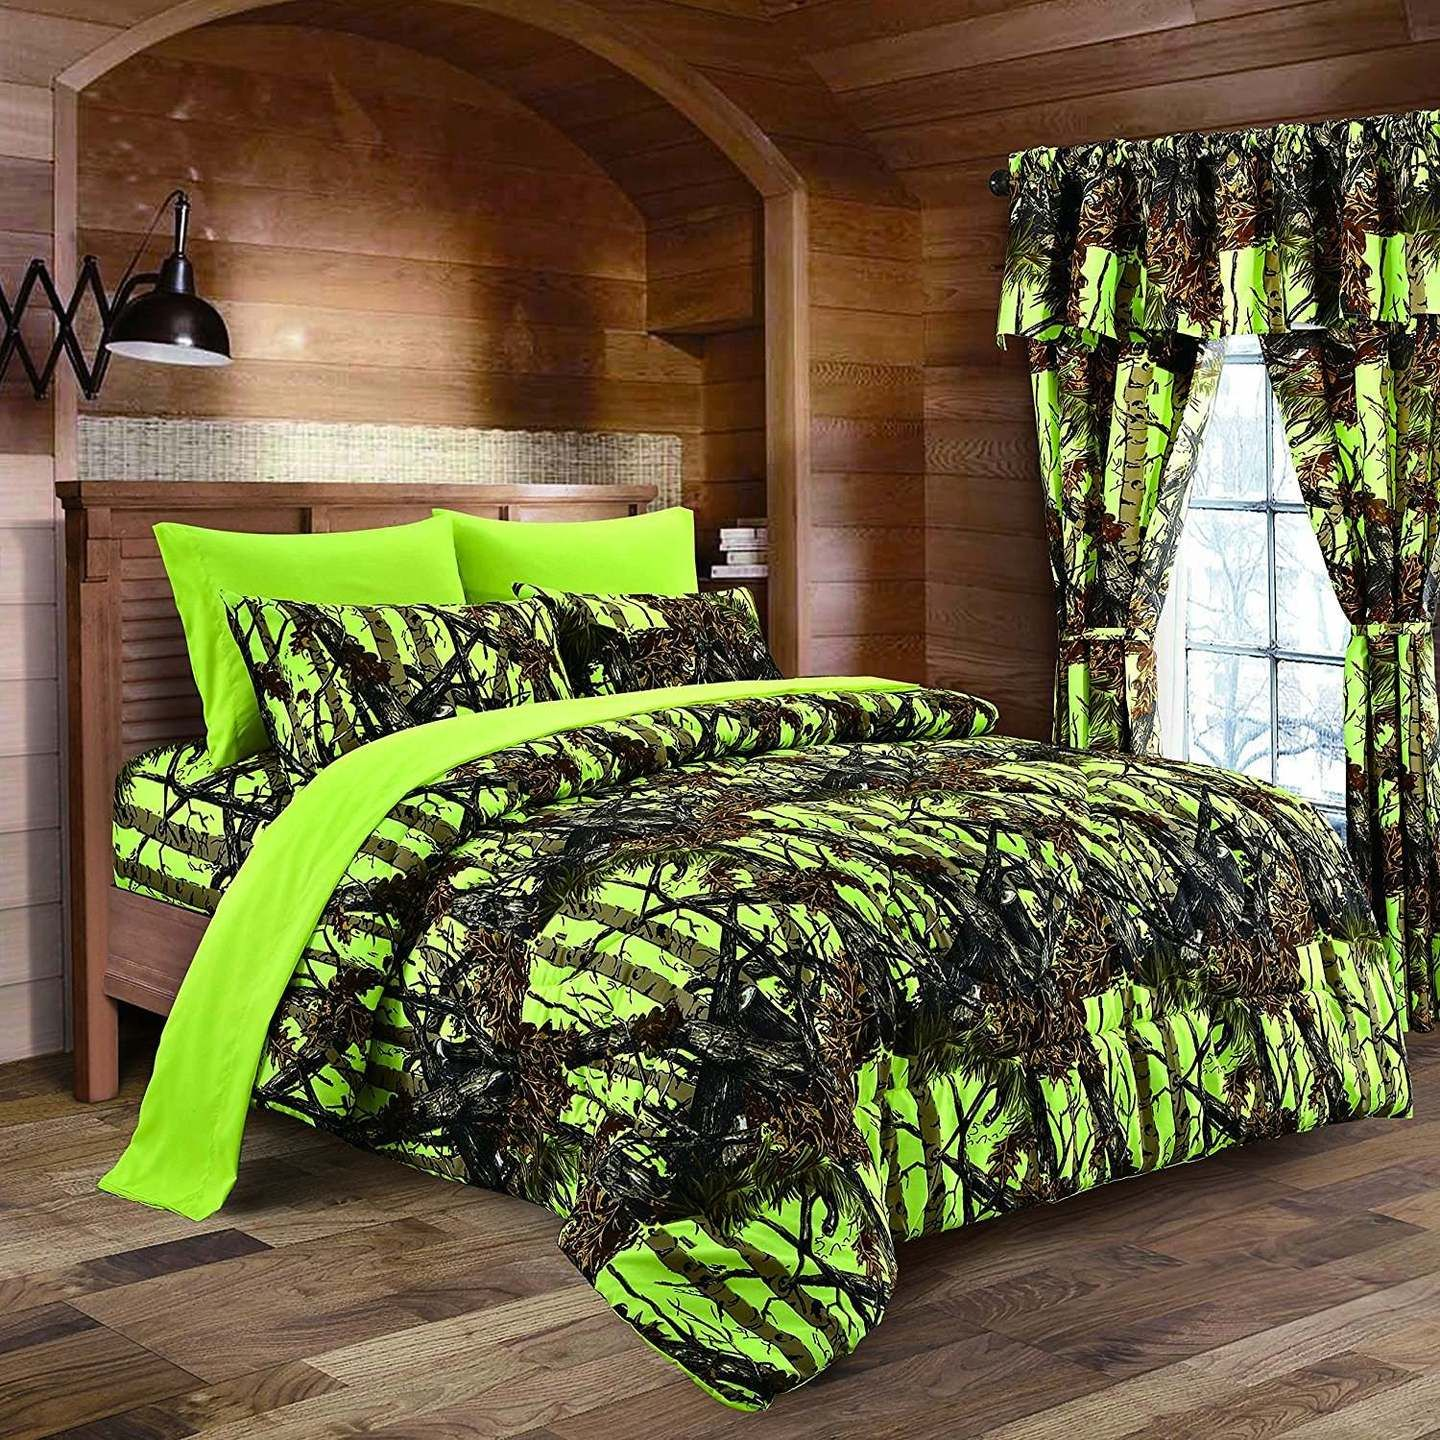 7 PC FULL SIZE WOODS NATURAL CAMO COMFORTER AND ORANGE SHEET SET CAMOUFLAGE